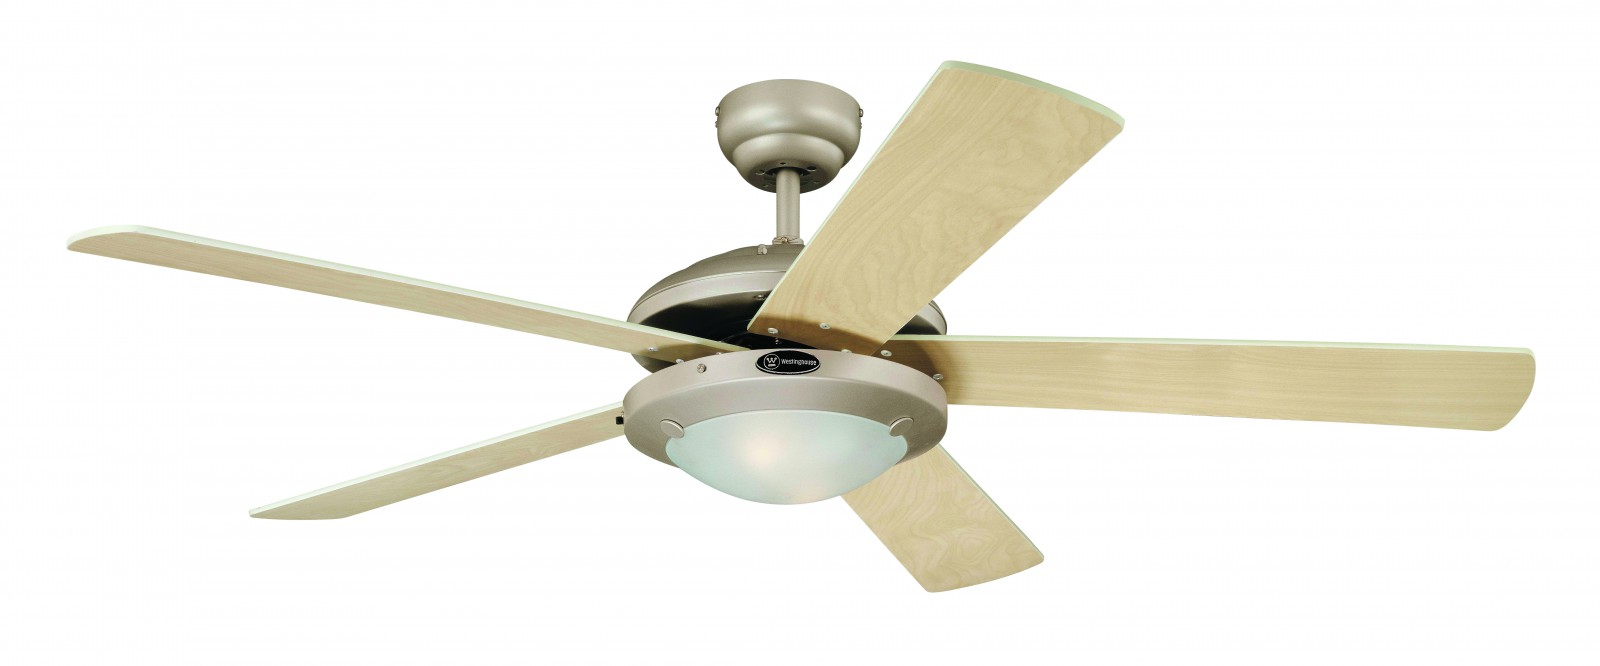 mercator ceiling fan instruction manual